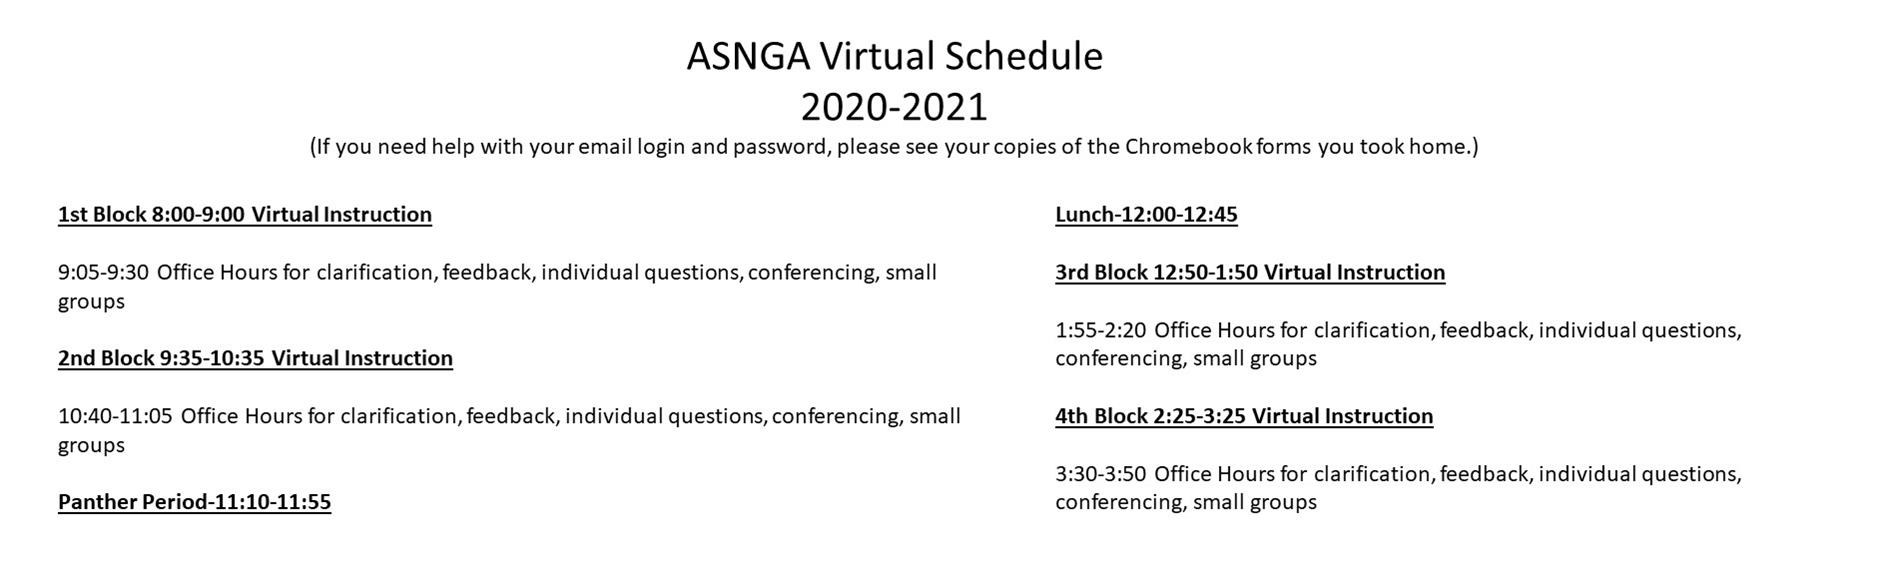 ASNGA Virtual Schedule